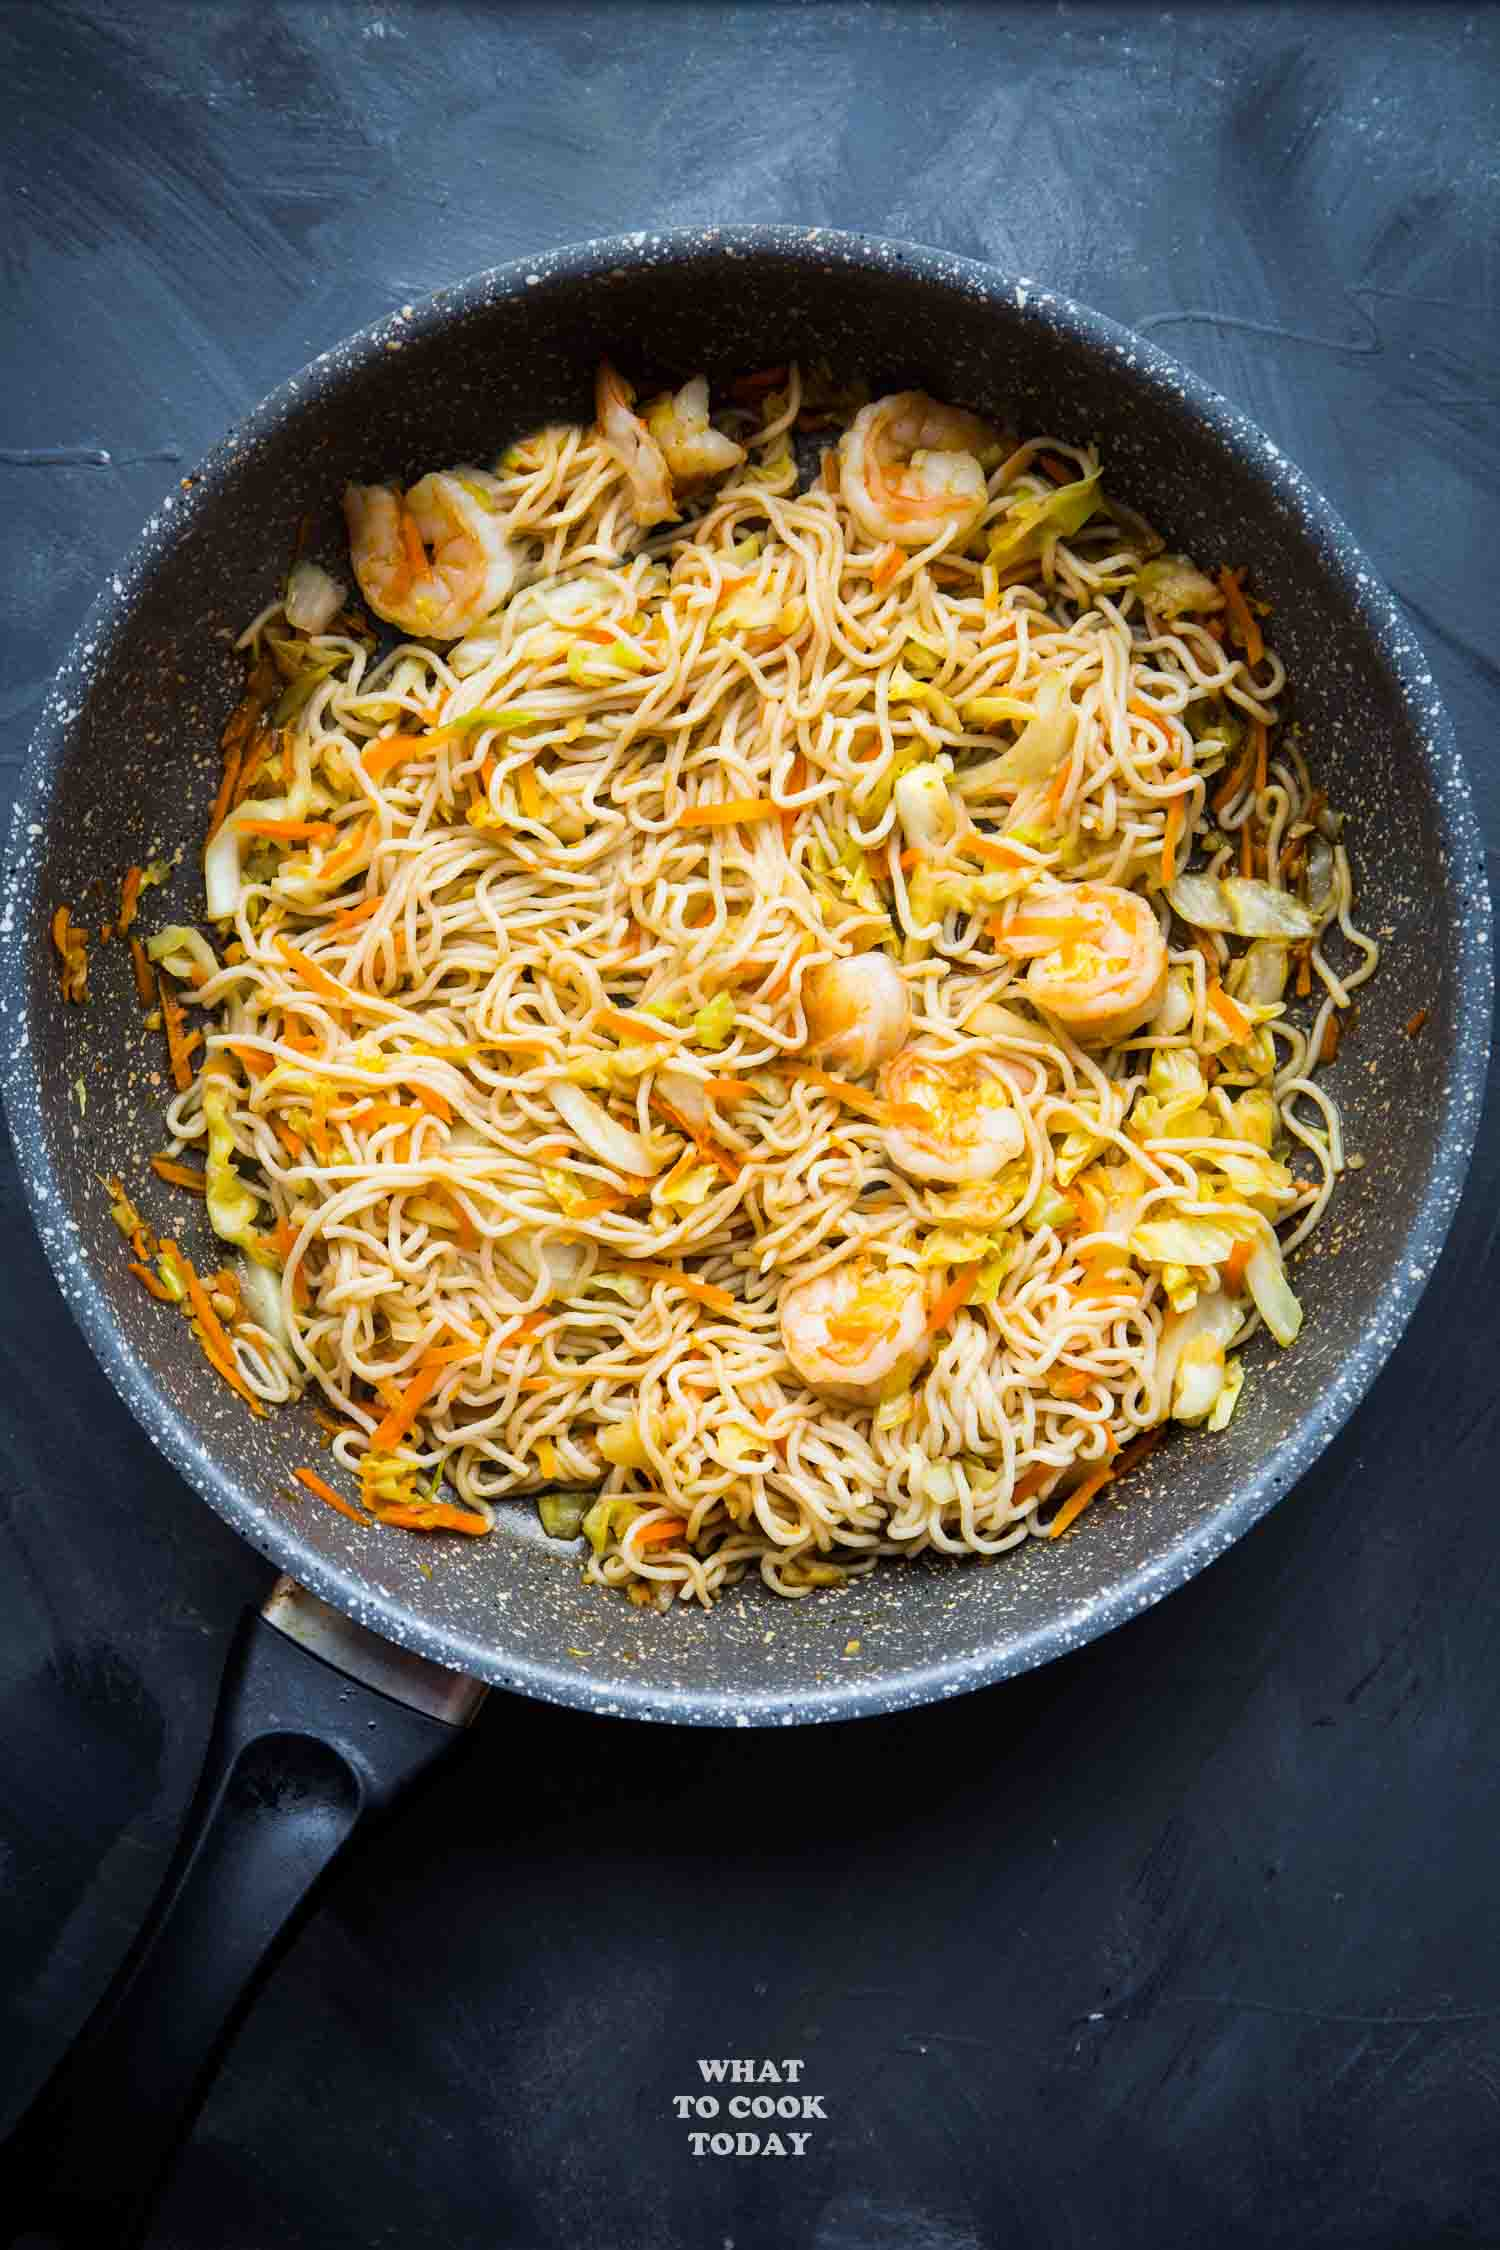 15-minute Stir-fried Shrimp Shirataki Noodles